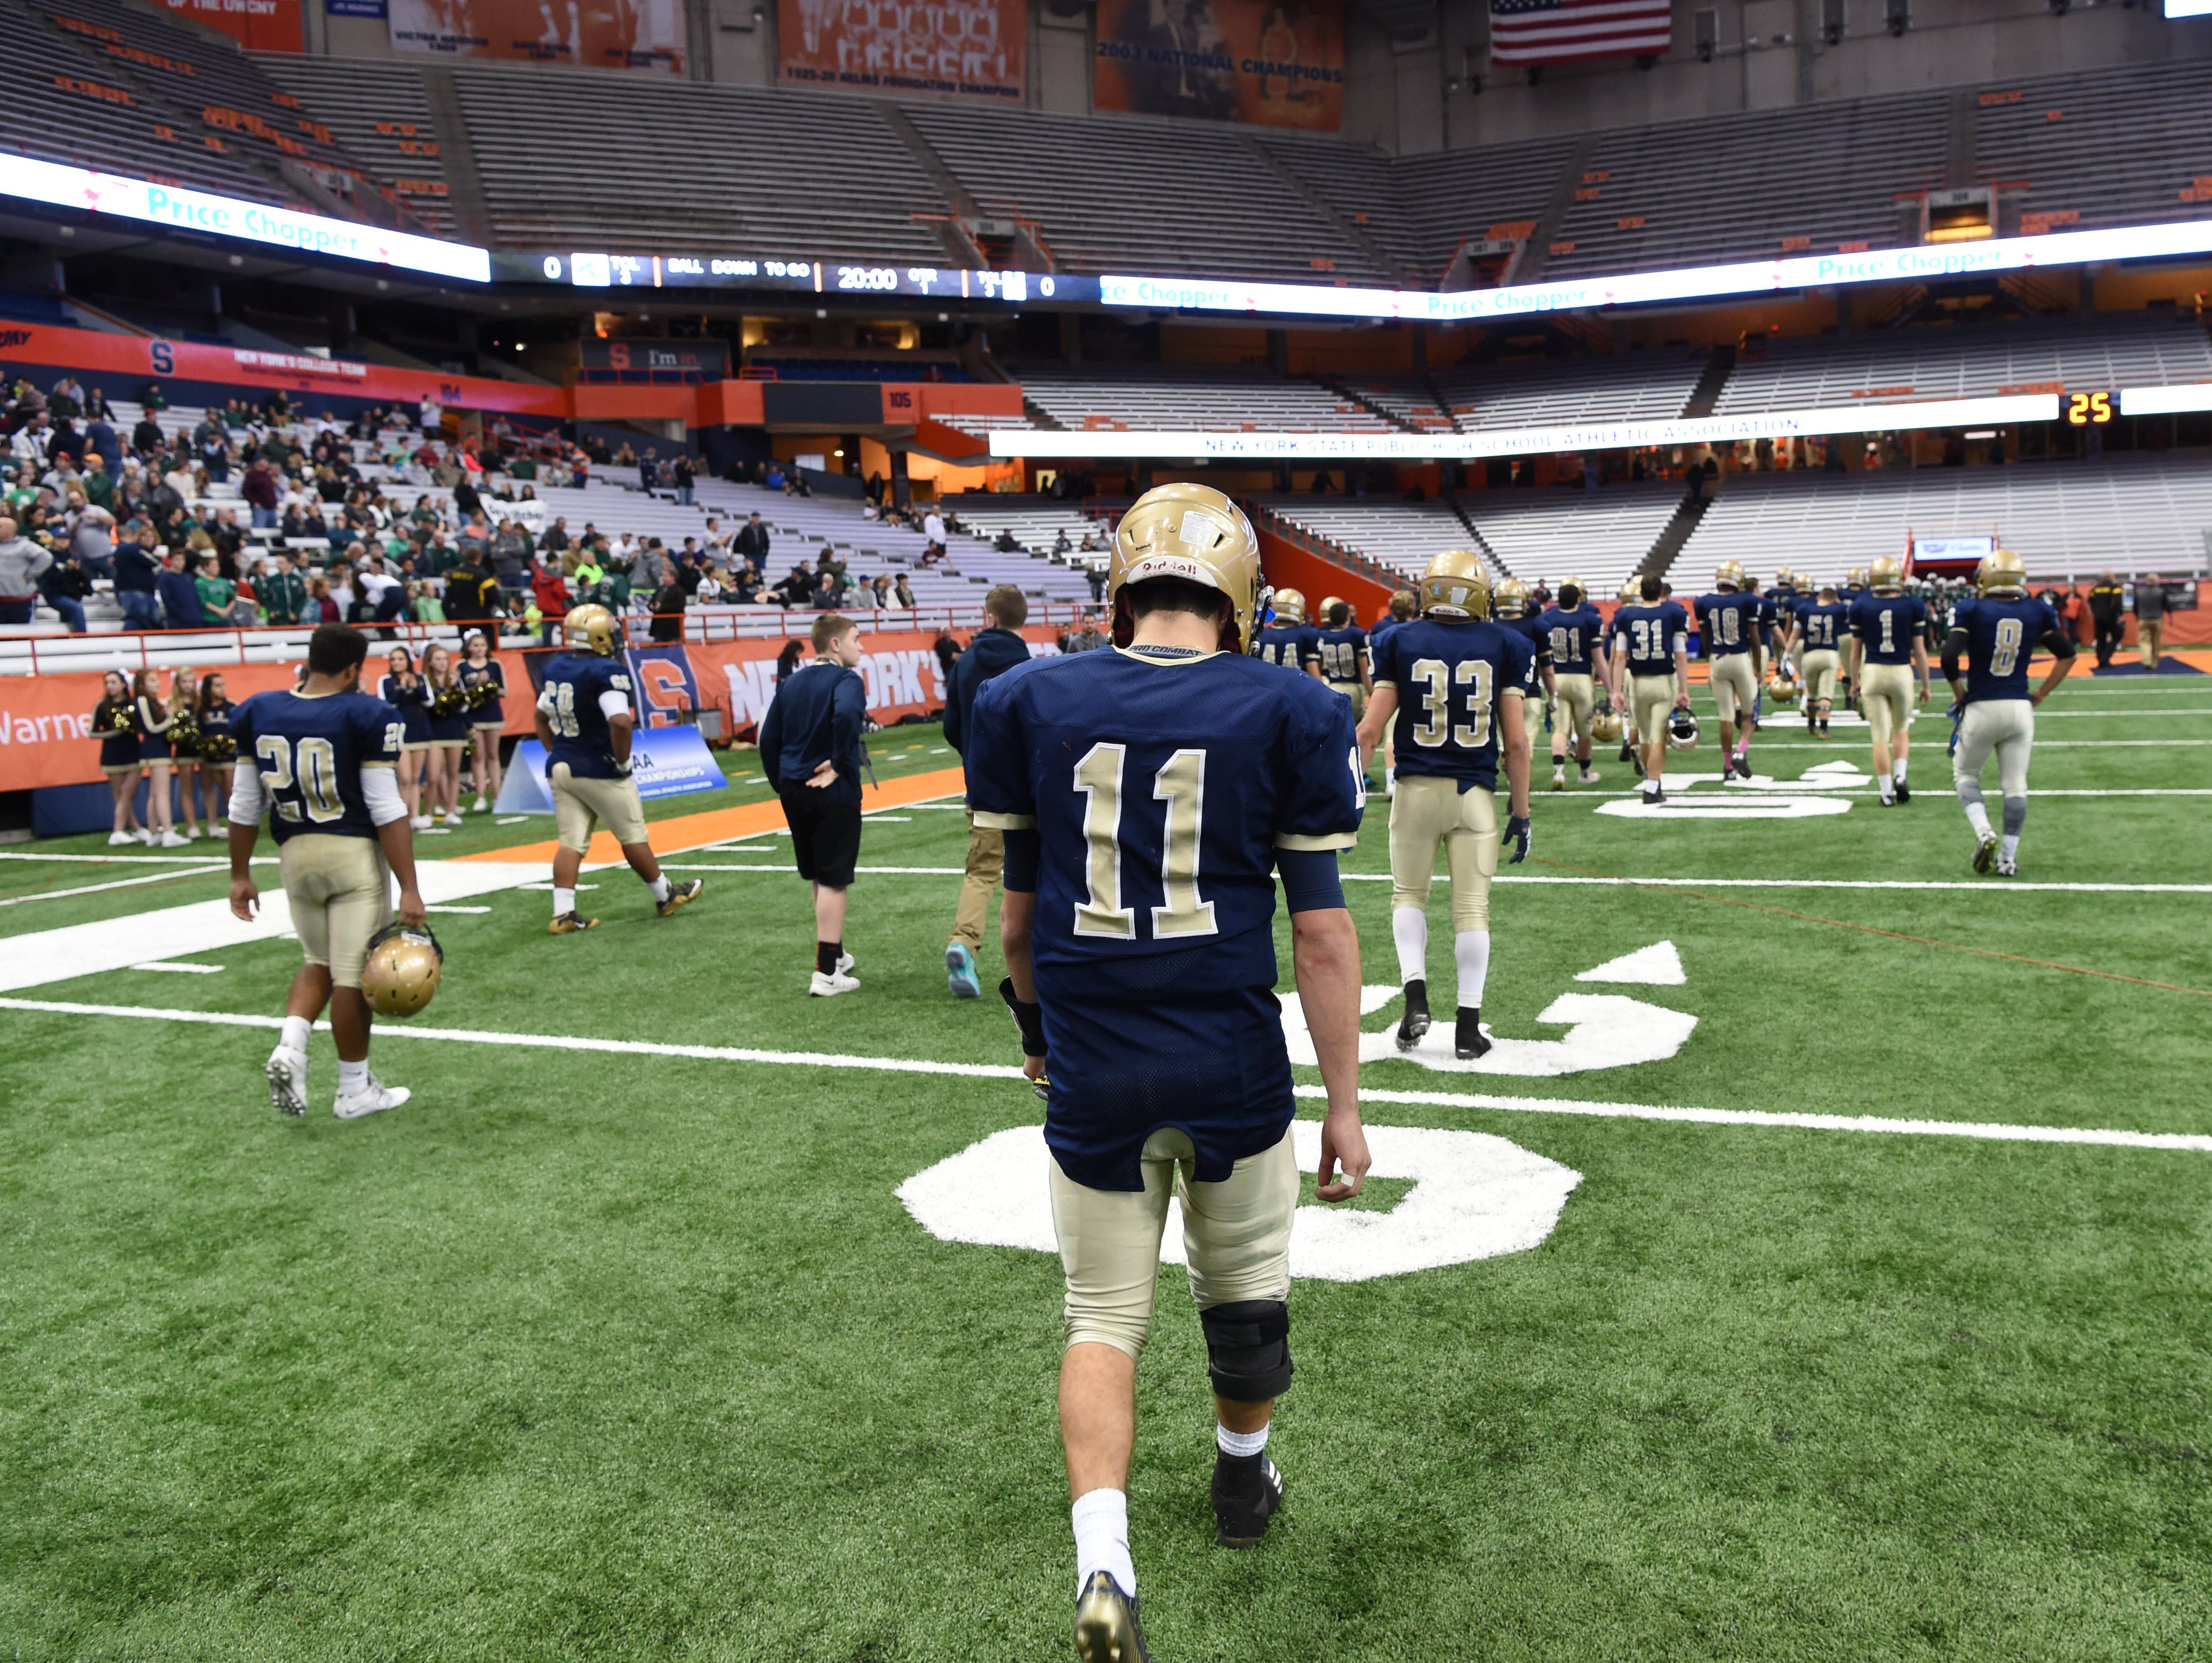 Our Lady of Lourdes' football team after the New York State Championship final versus South Park in Syracuse on Friday.